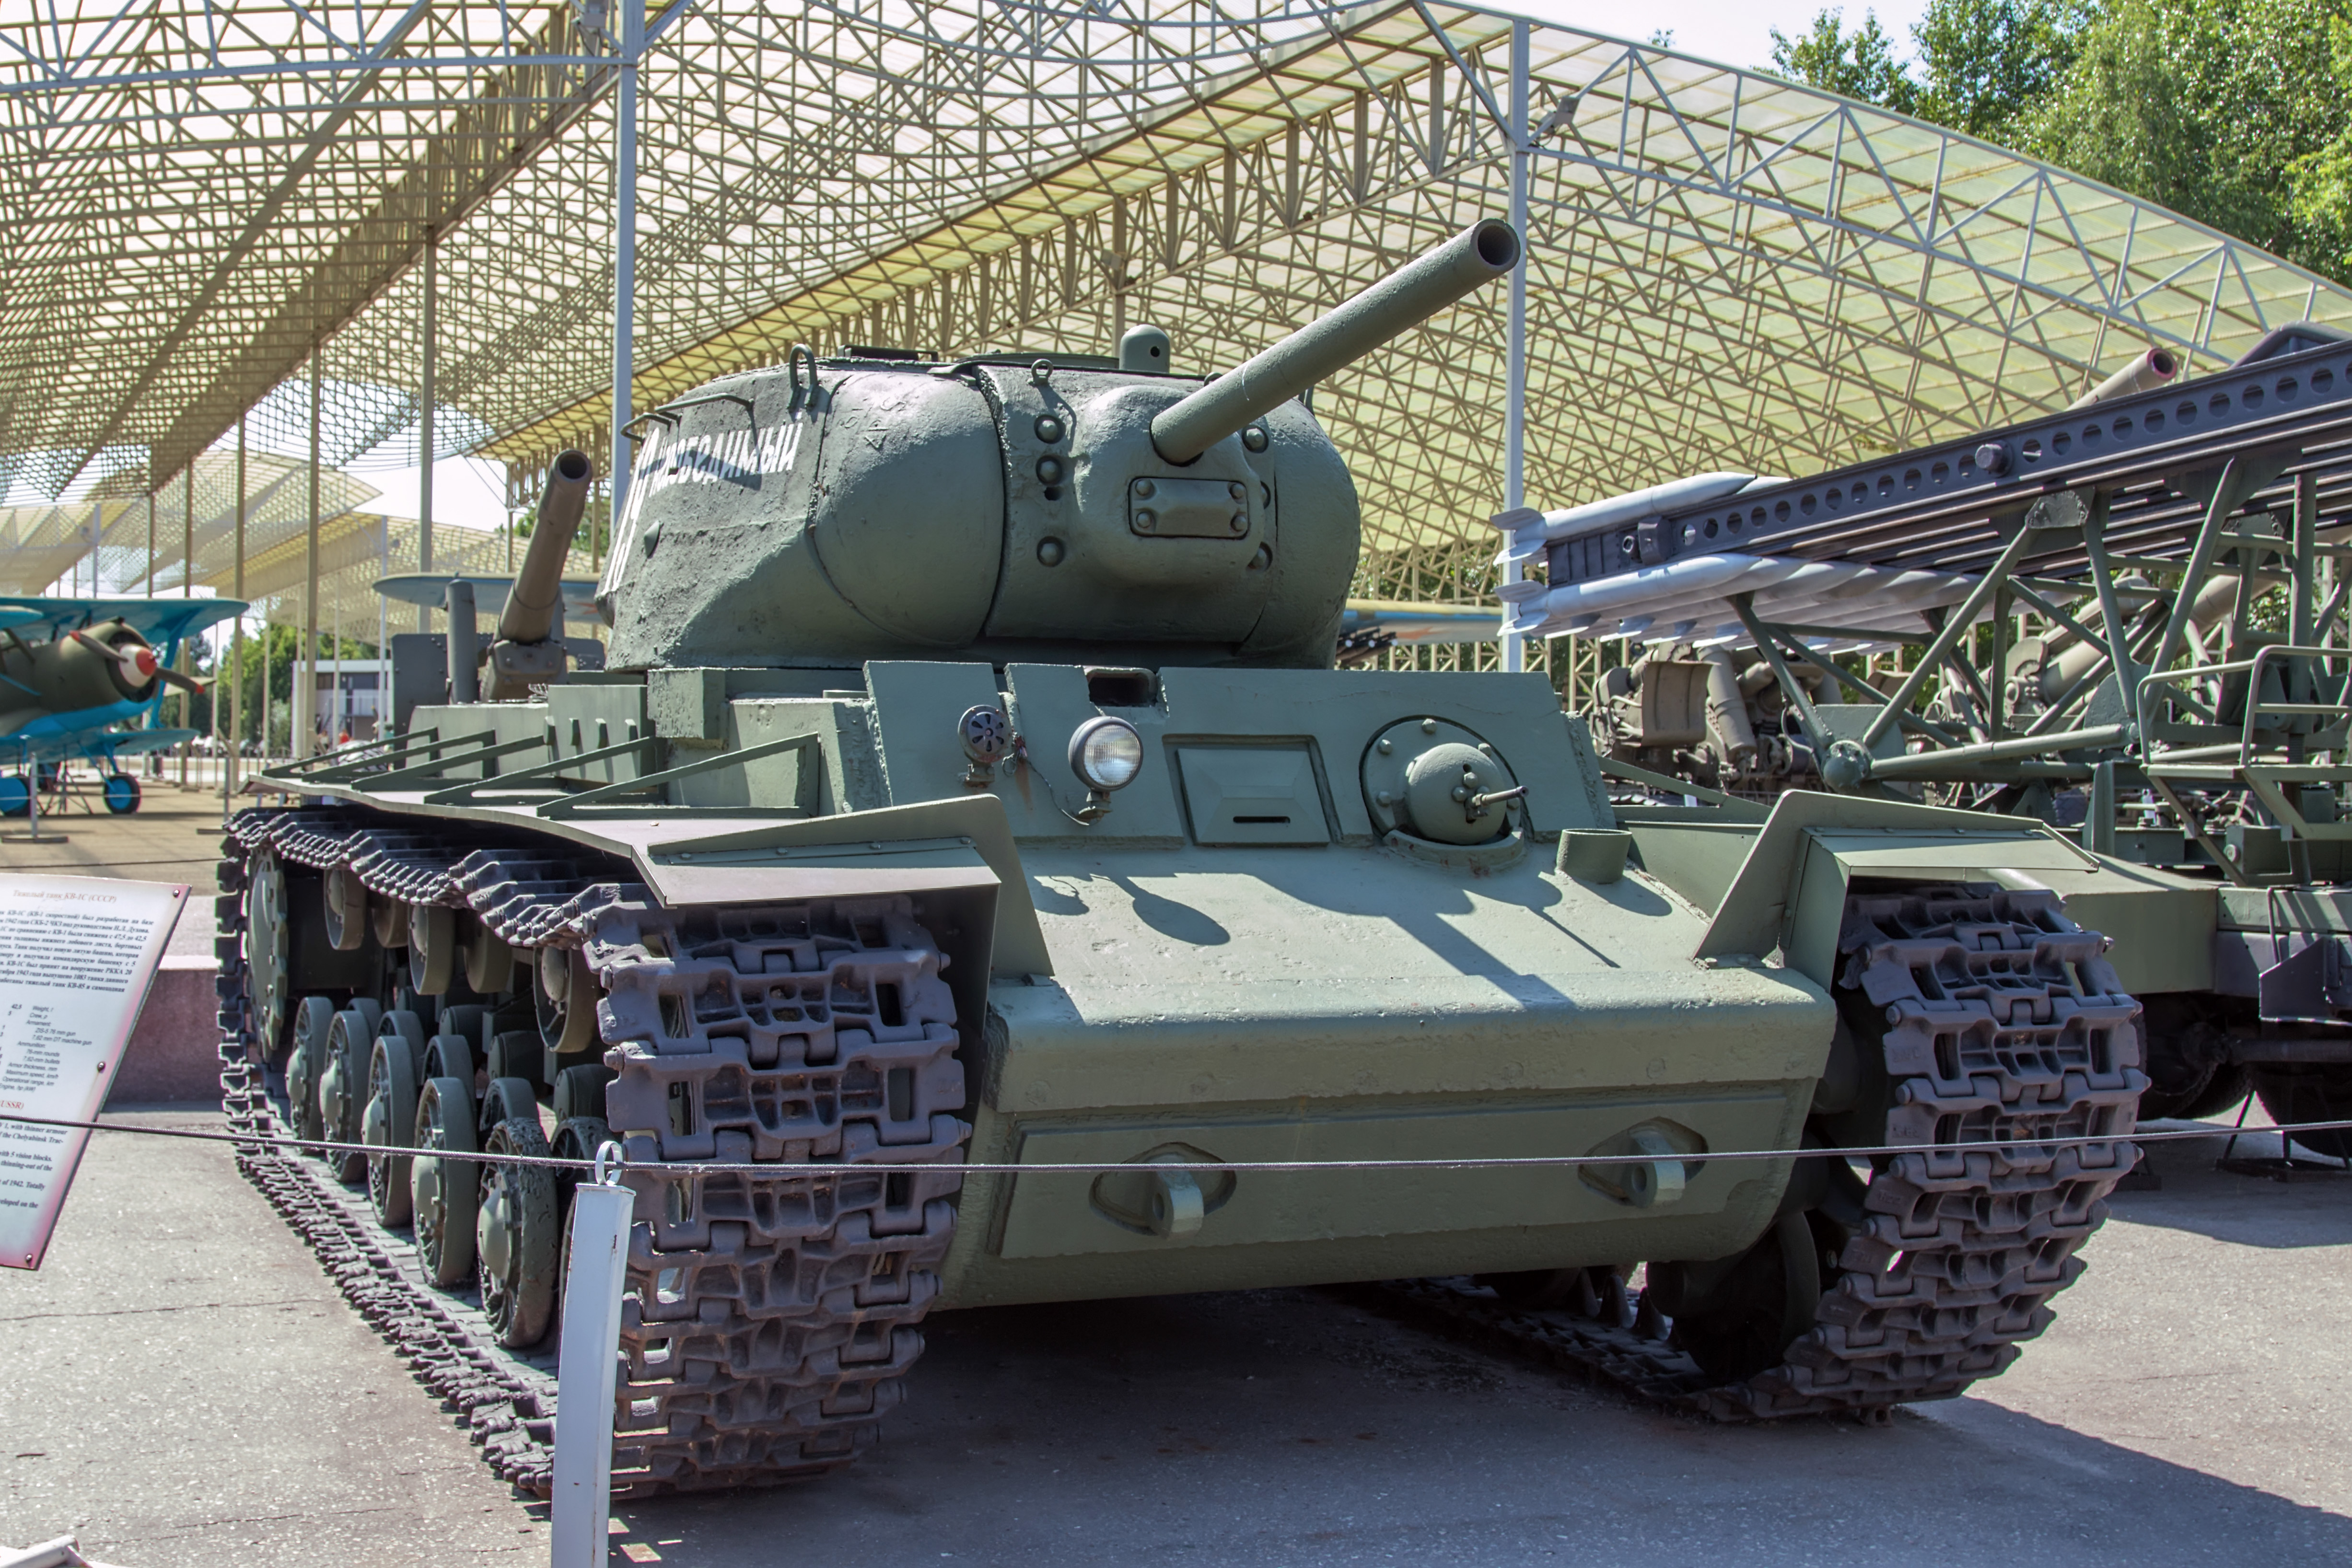 Kv 1 With Kv 1s Turret In The Great Patriotic War Museum